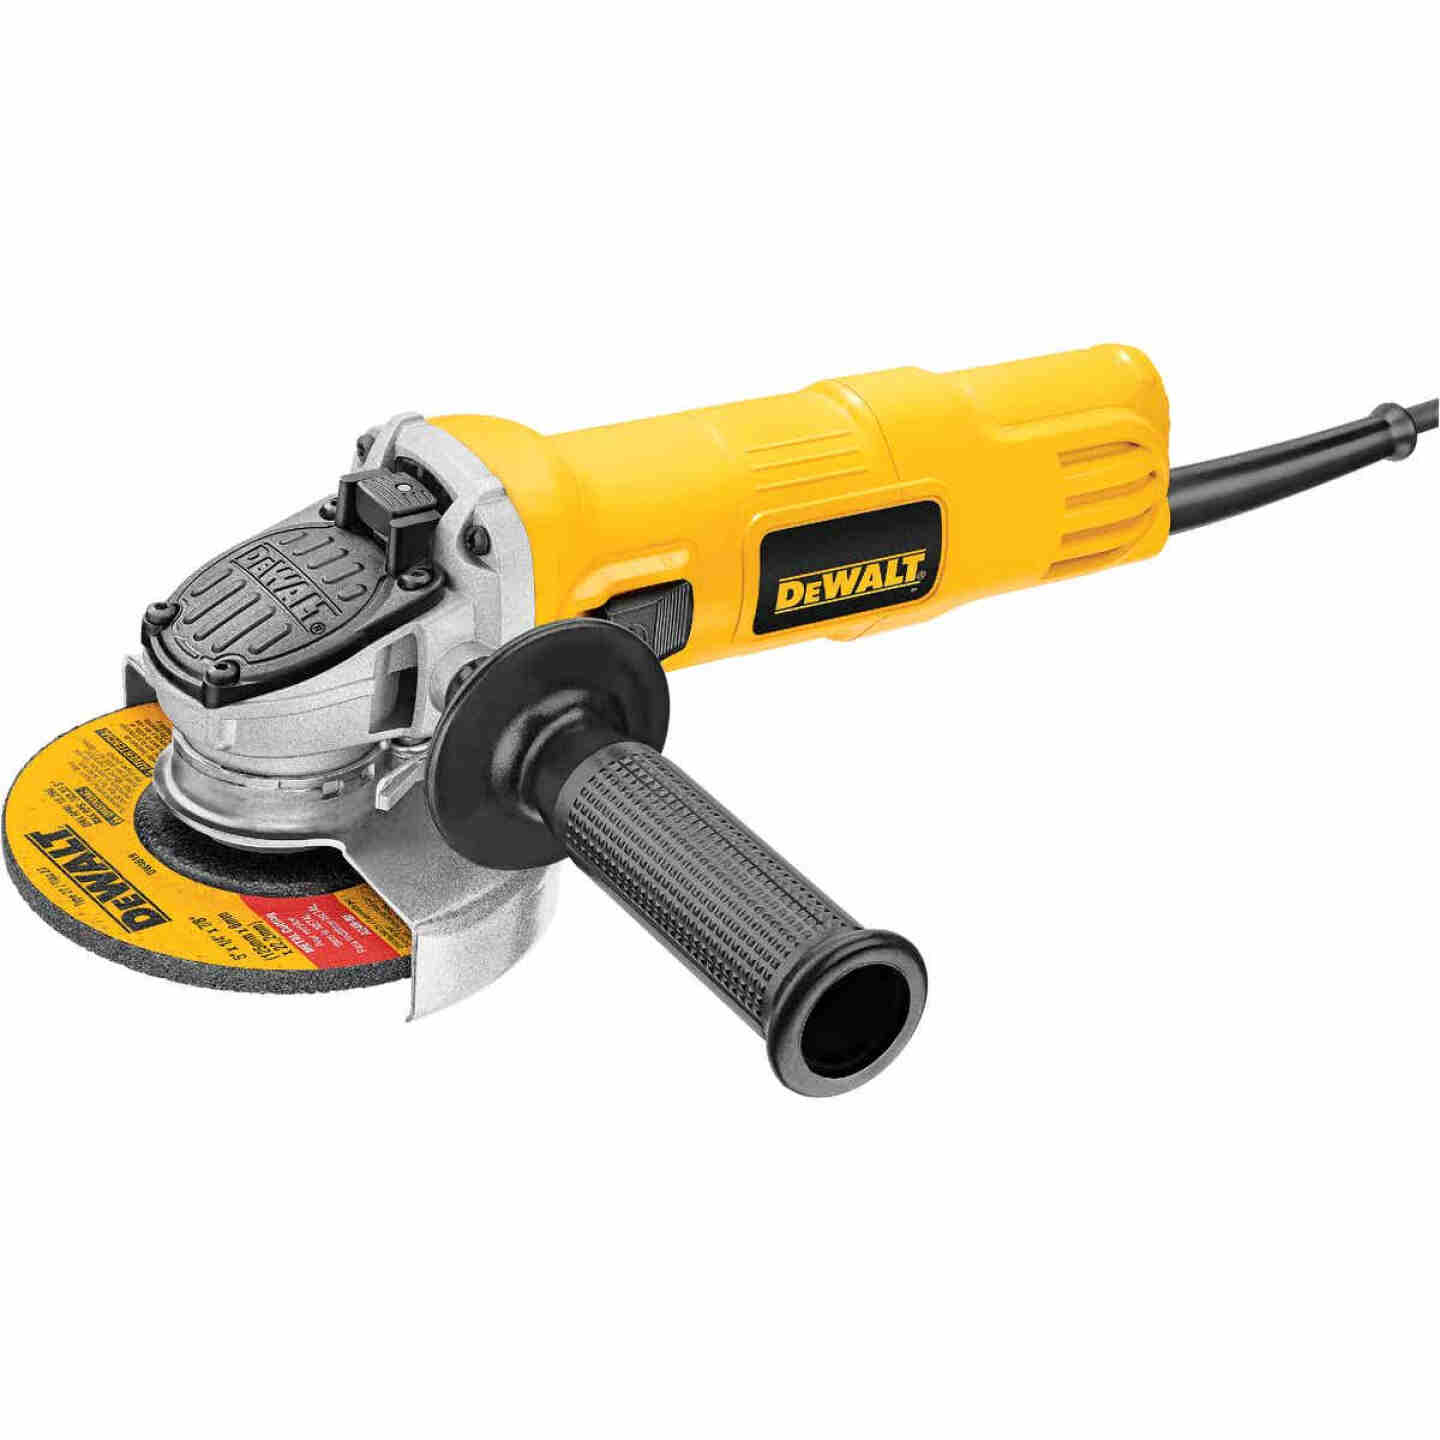 DeWalt 4-1/2 In. 7-Amp Angle Grinder with One-Touch Guard Image 2